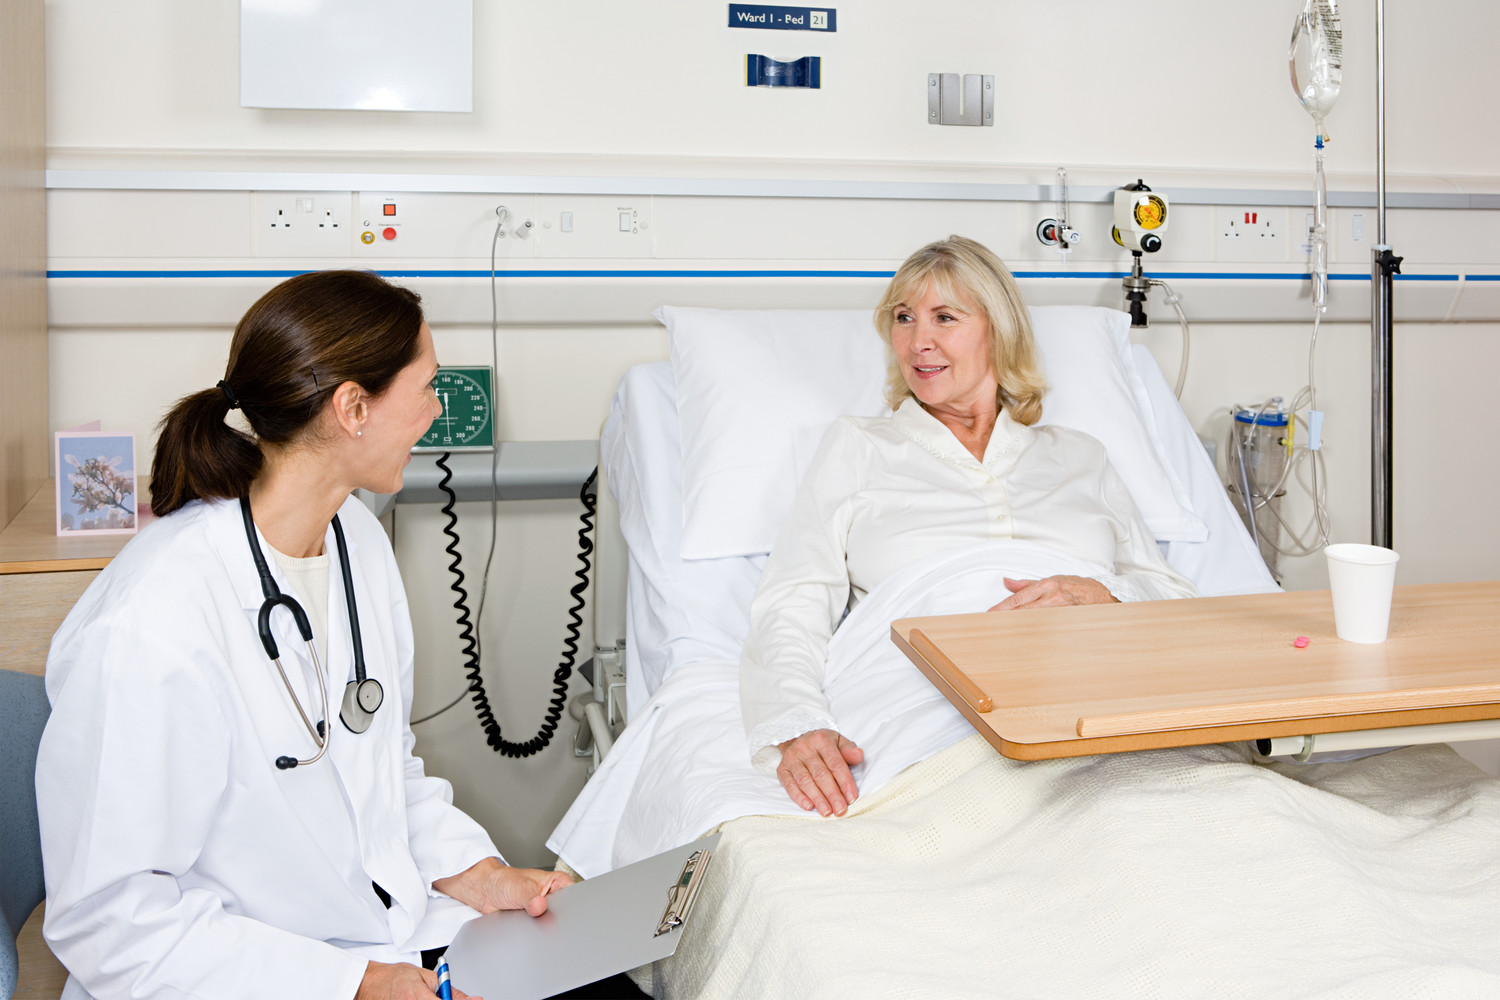 nursing student evaluating female patient at bedside